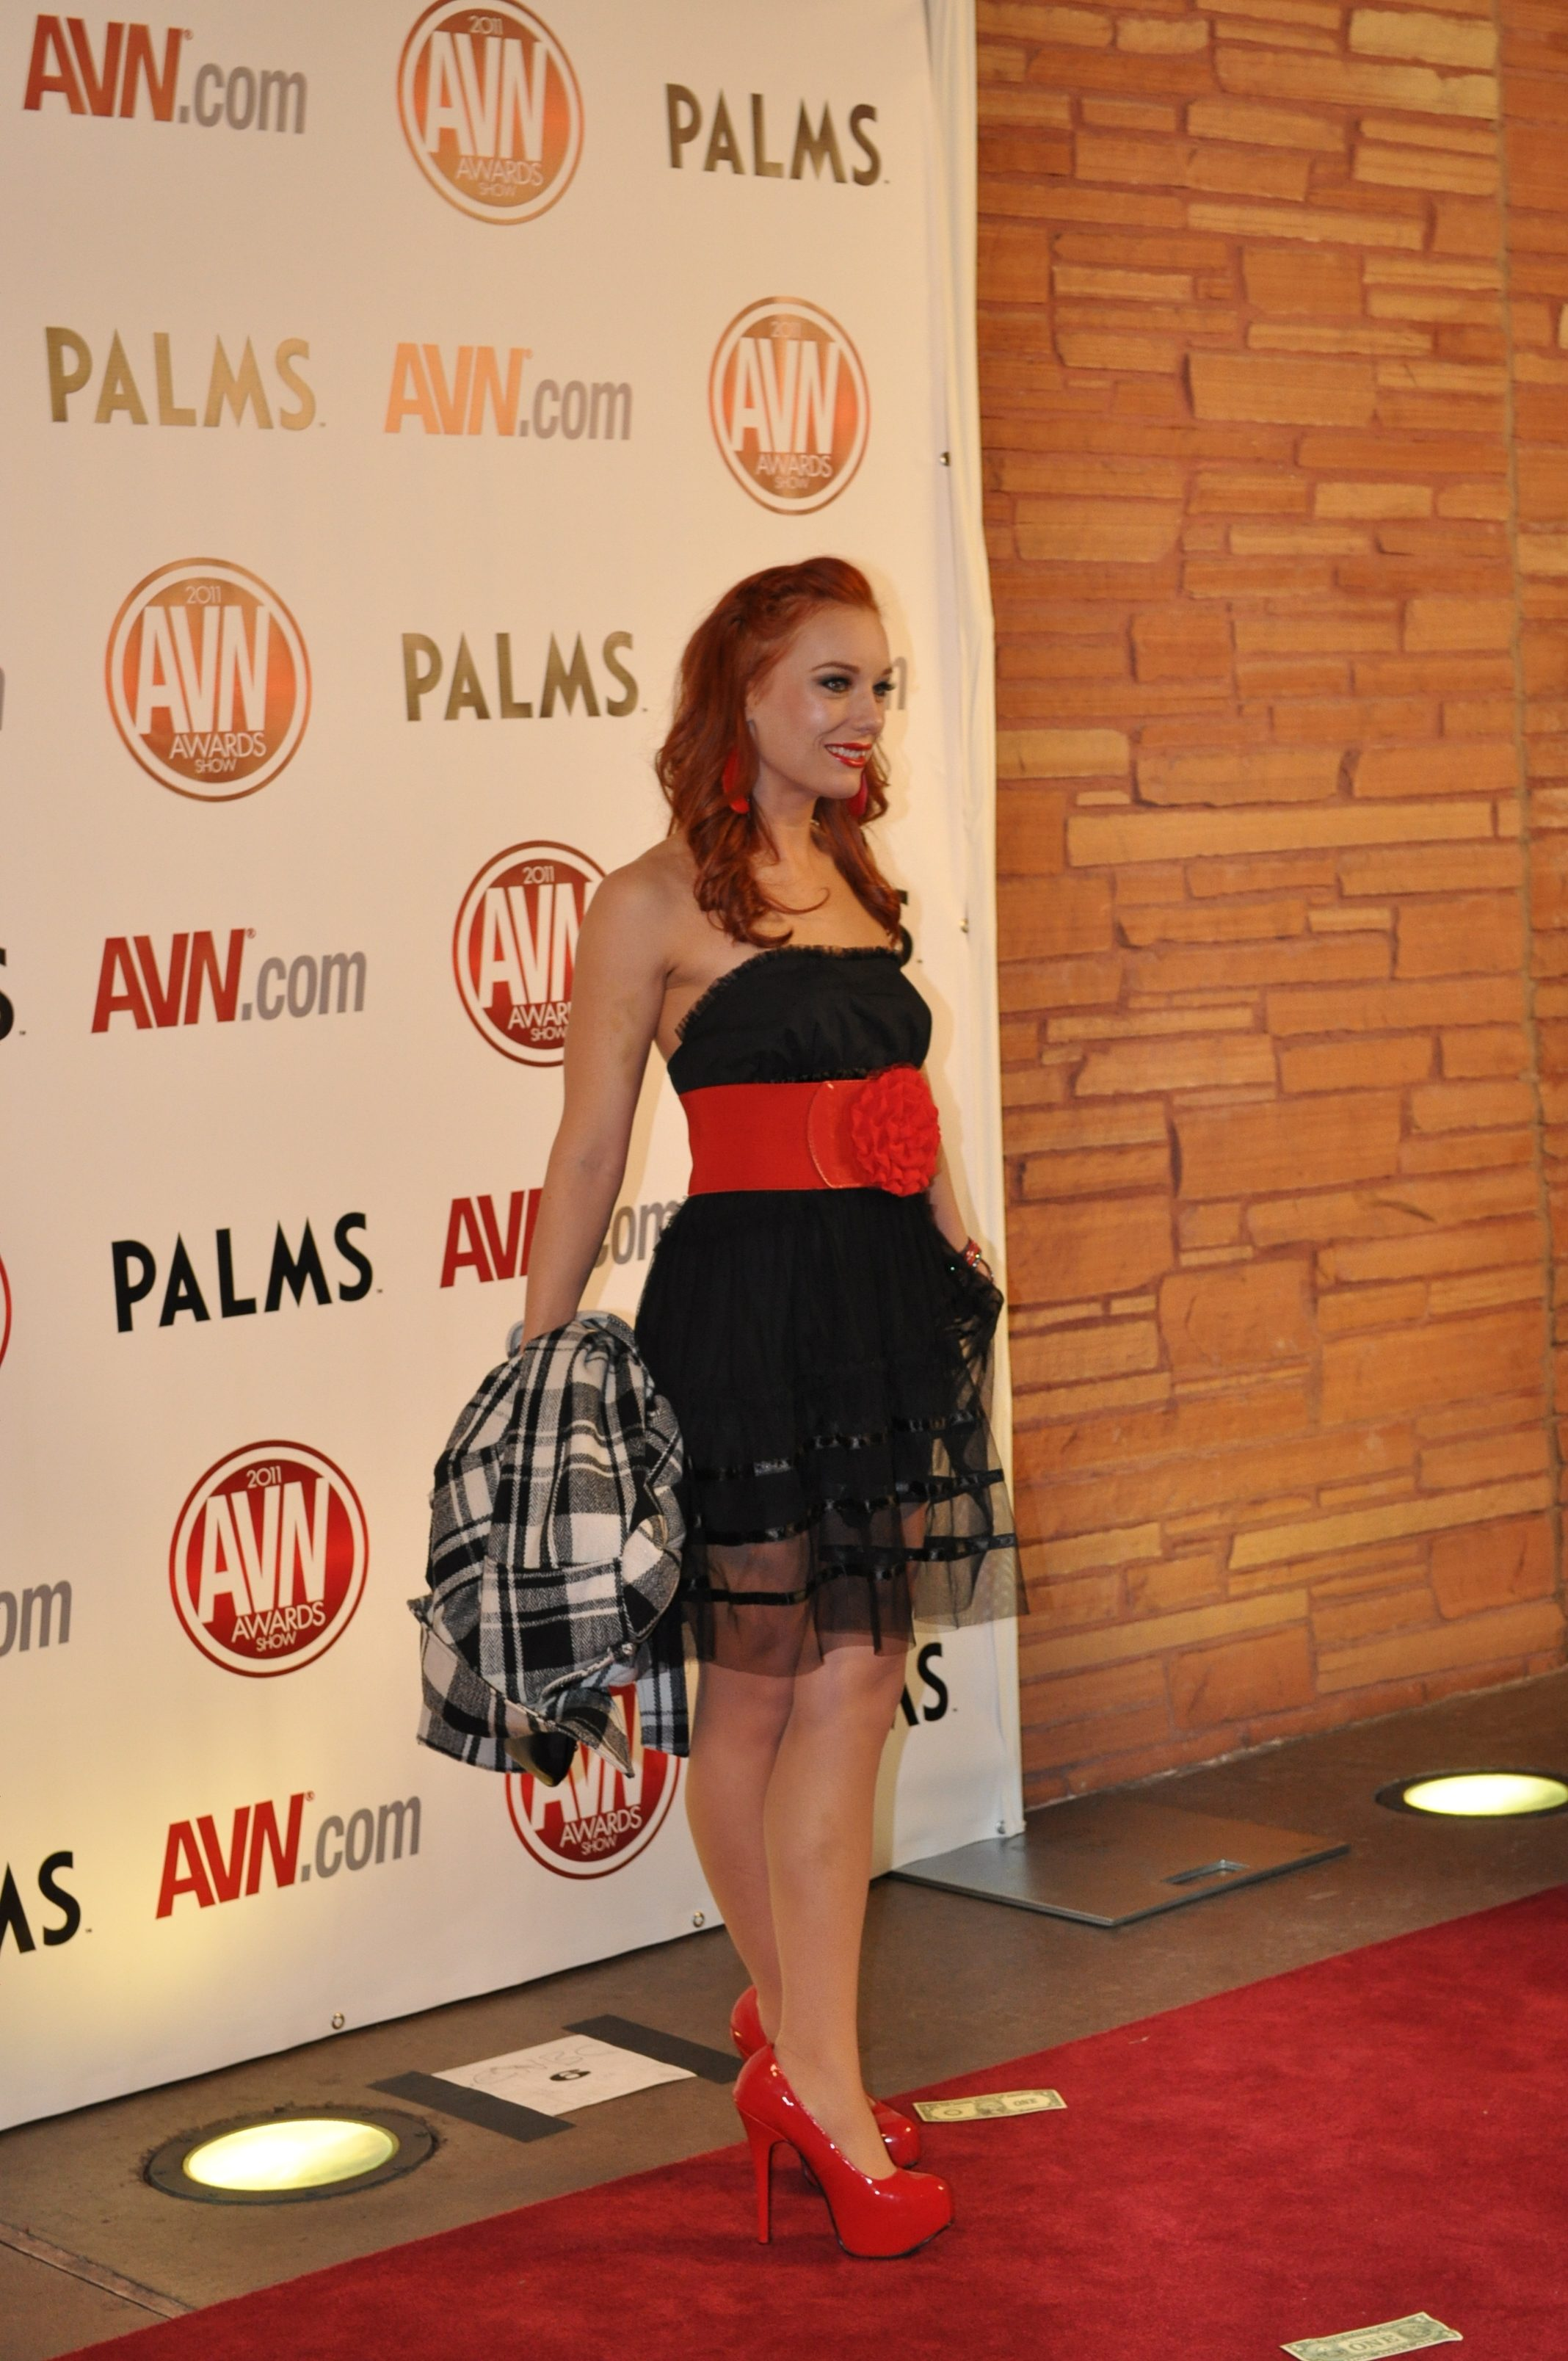 AVN_Awards_2011_DSC_0679.JPG_(5348865070)